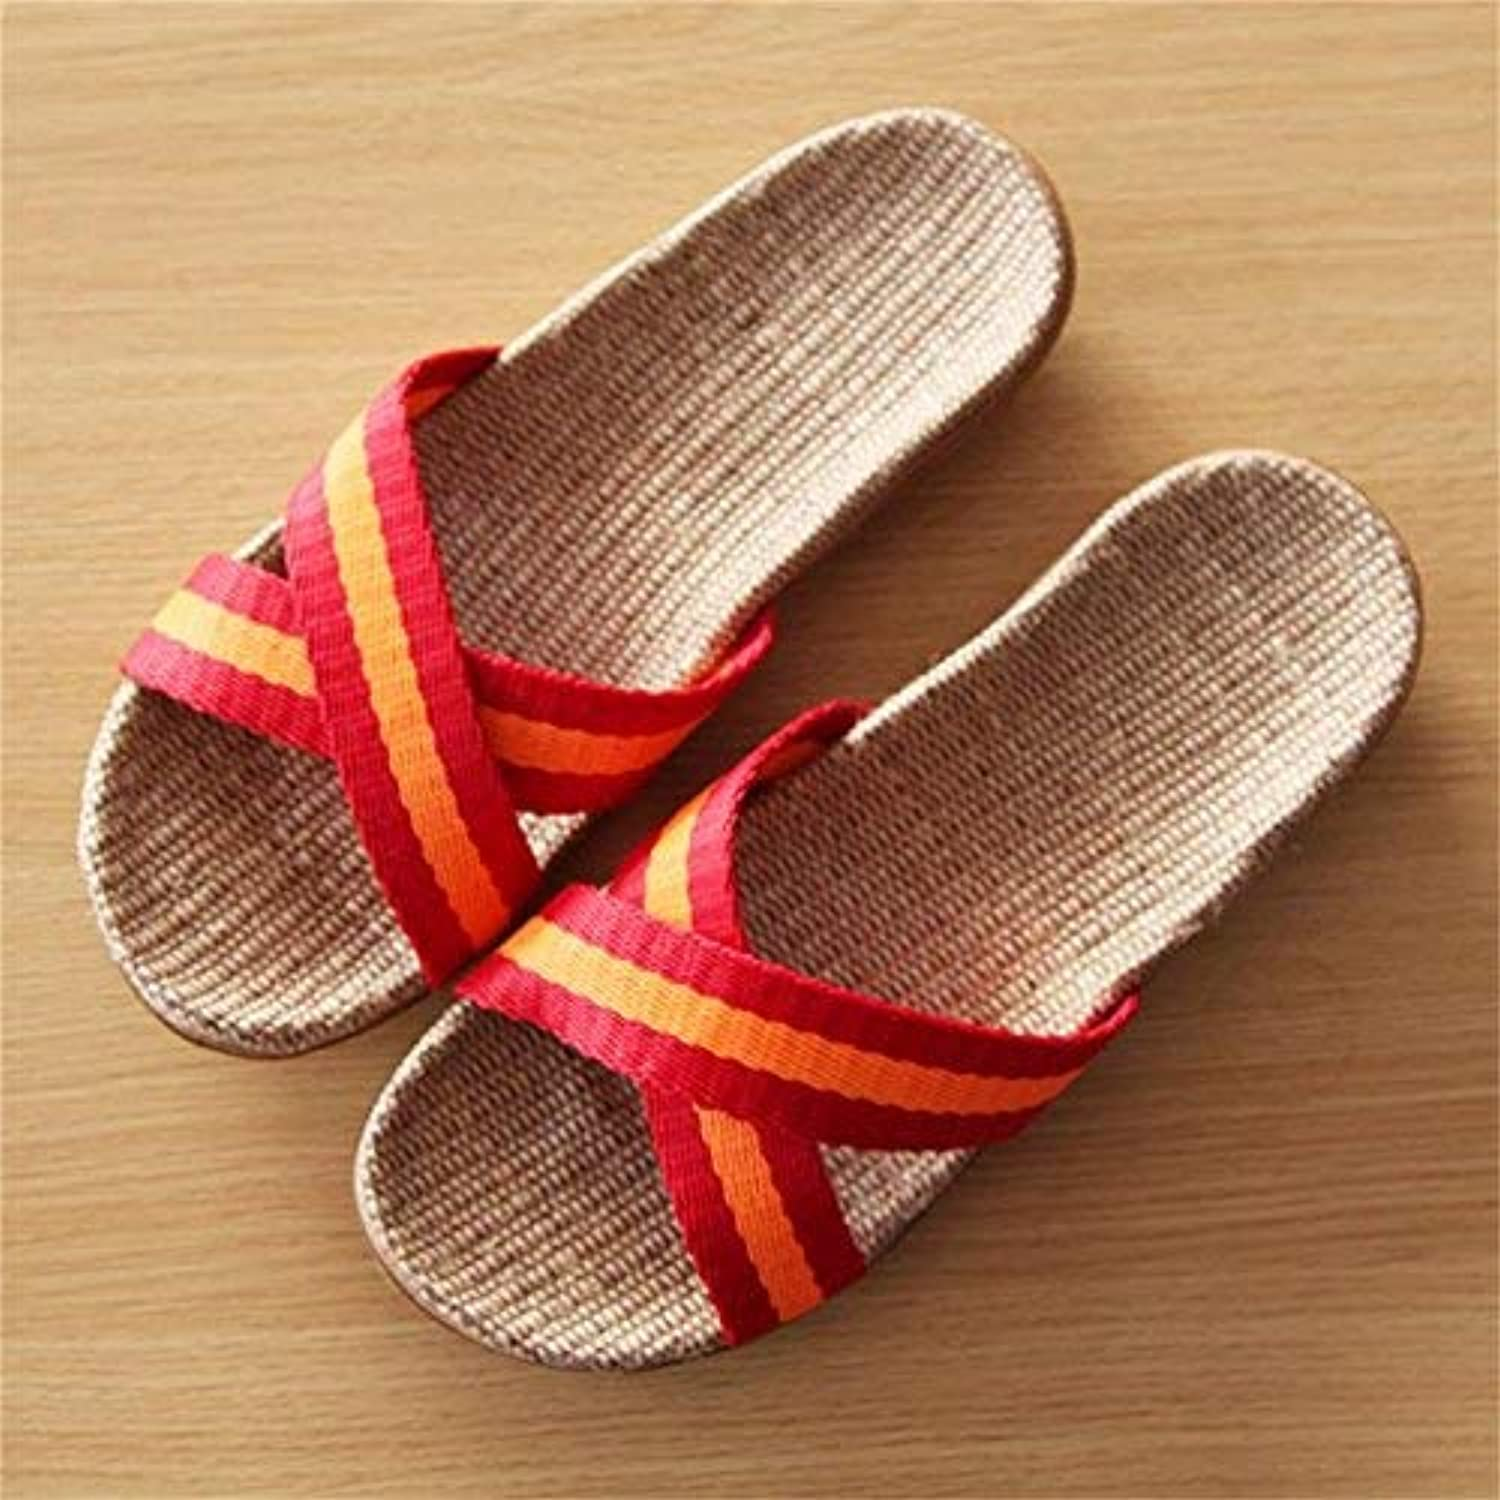 JaHGDU orange pink Red Women's Casual Sandals Slippers Thick-Soled Indoor Linen Slip Home Slippers for Women